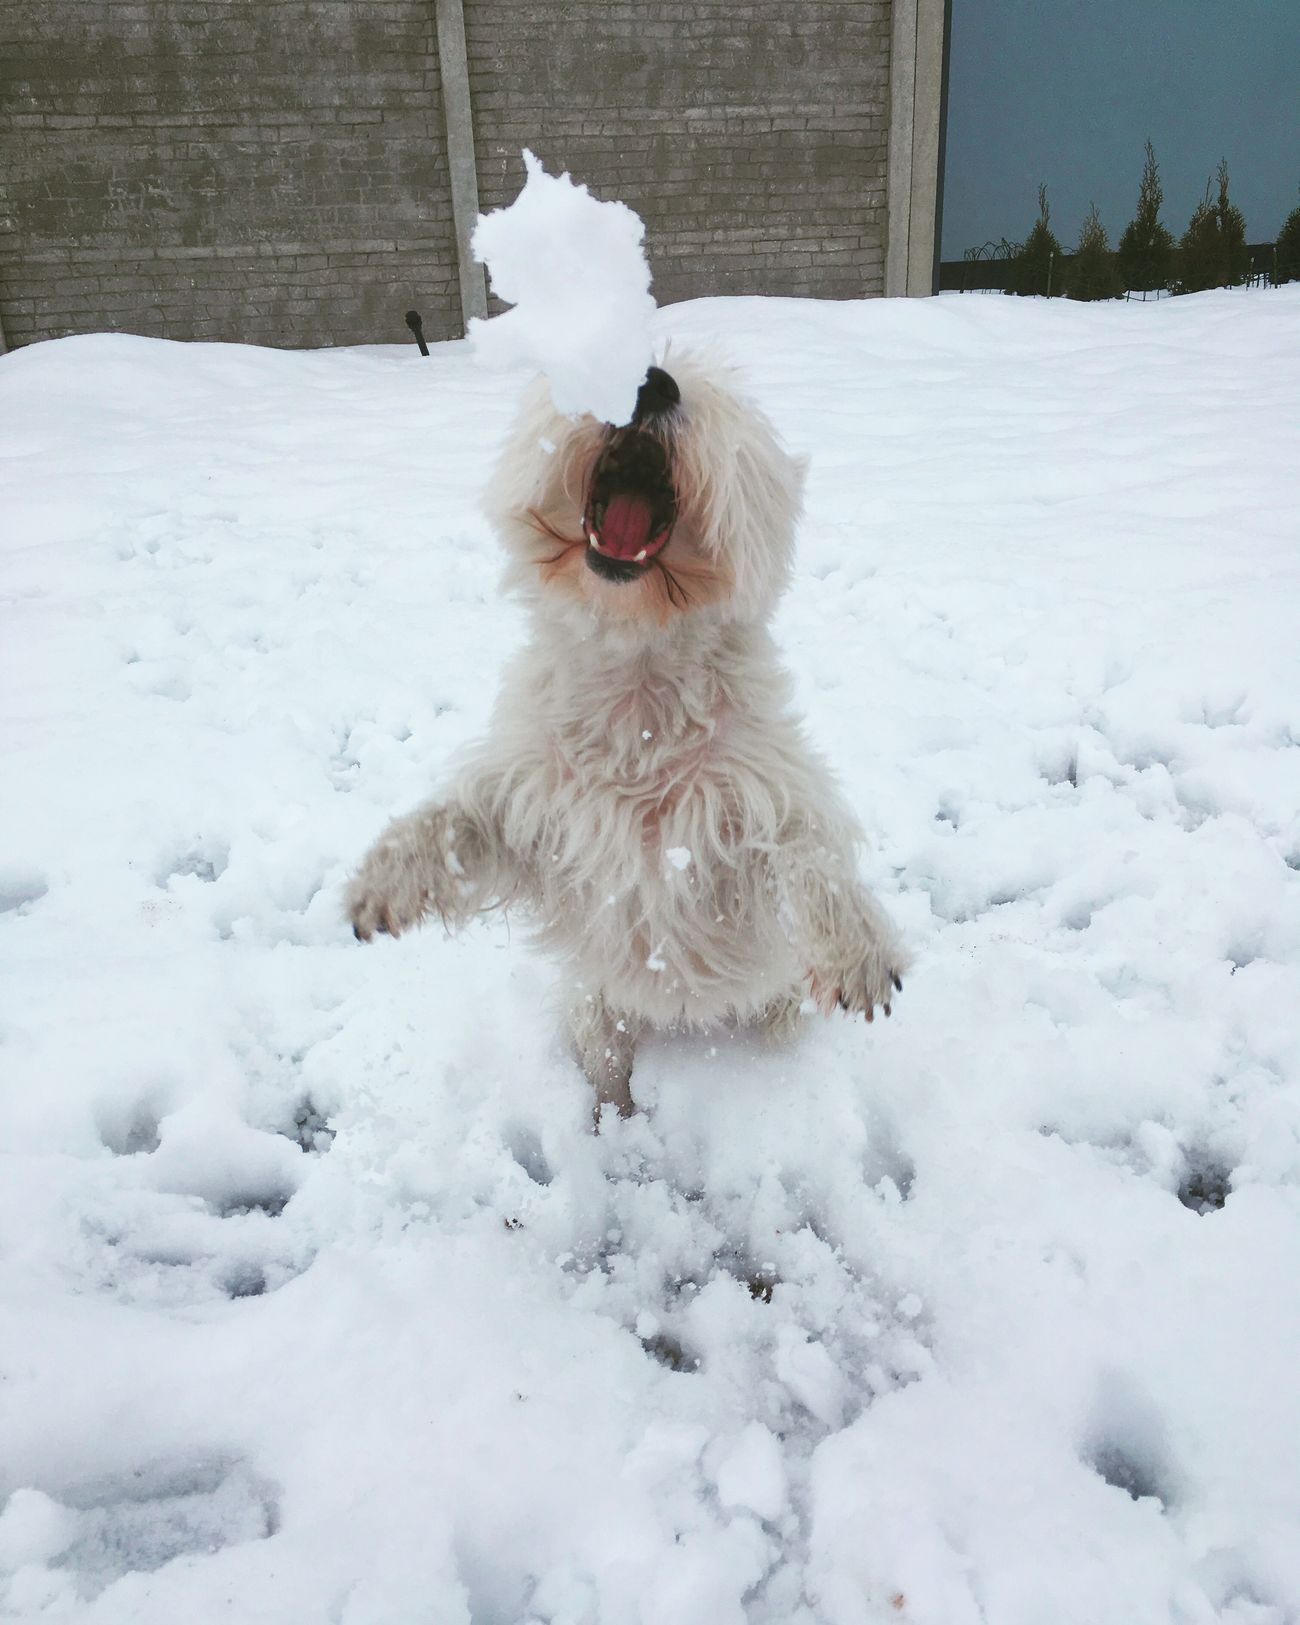 Snow West Highland White Terrier Dog Goodgirl I Love My Dog Hello World My Dog Is Cooler Than Your Kid. Queen Wintertime Play Pets Dog Love Westie Dogs My Girl My Dog Winter Westies Catching A Show Lady Game Dogs Of EyeEm Teeth Animal Dogslife